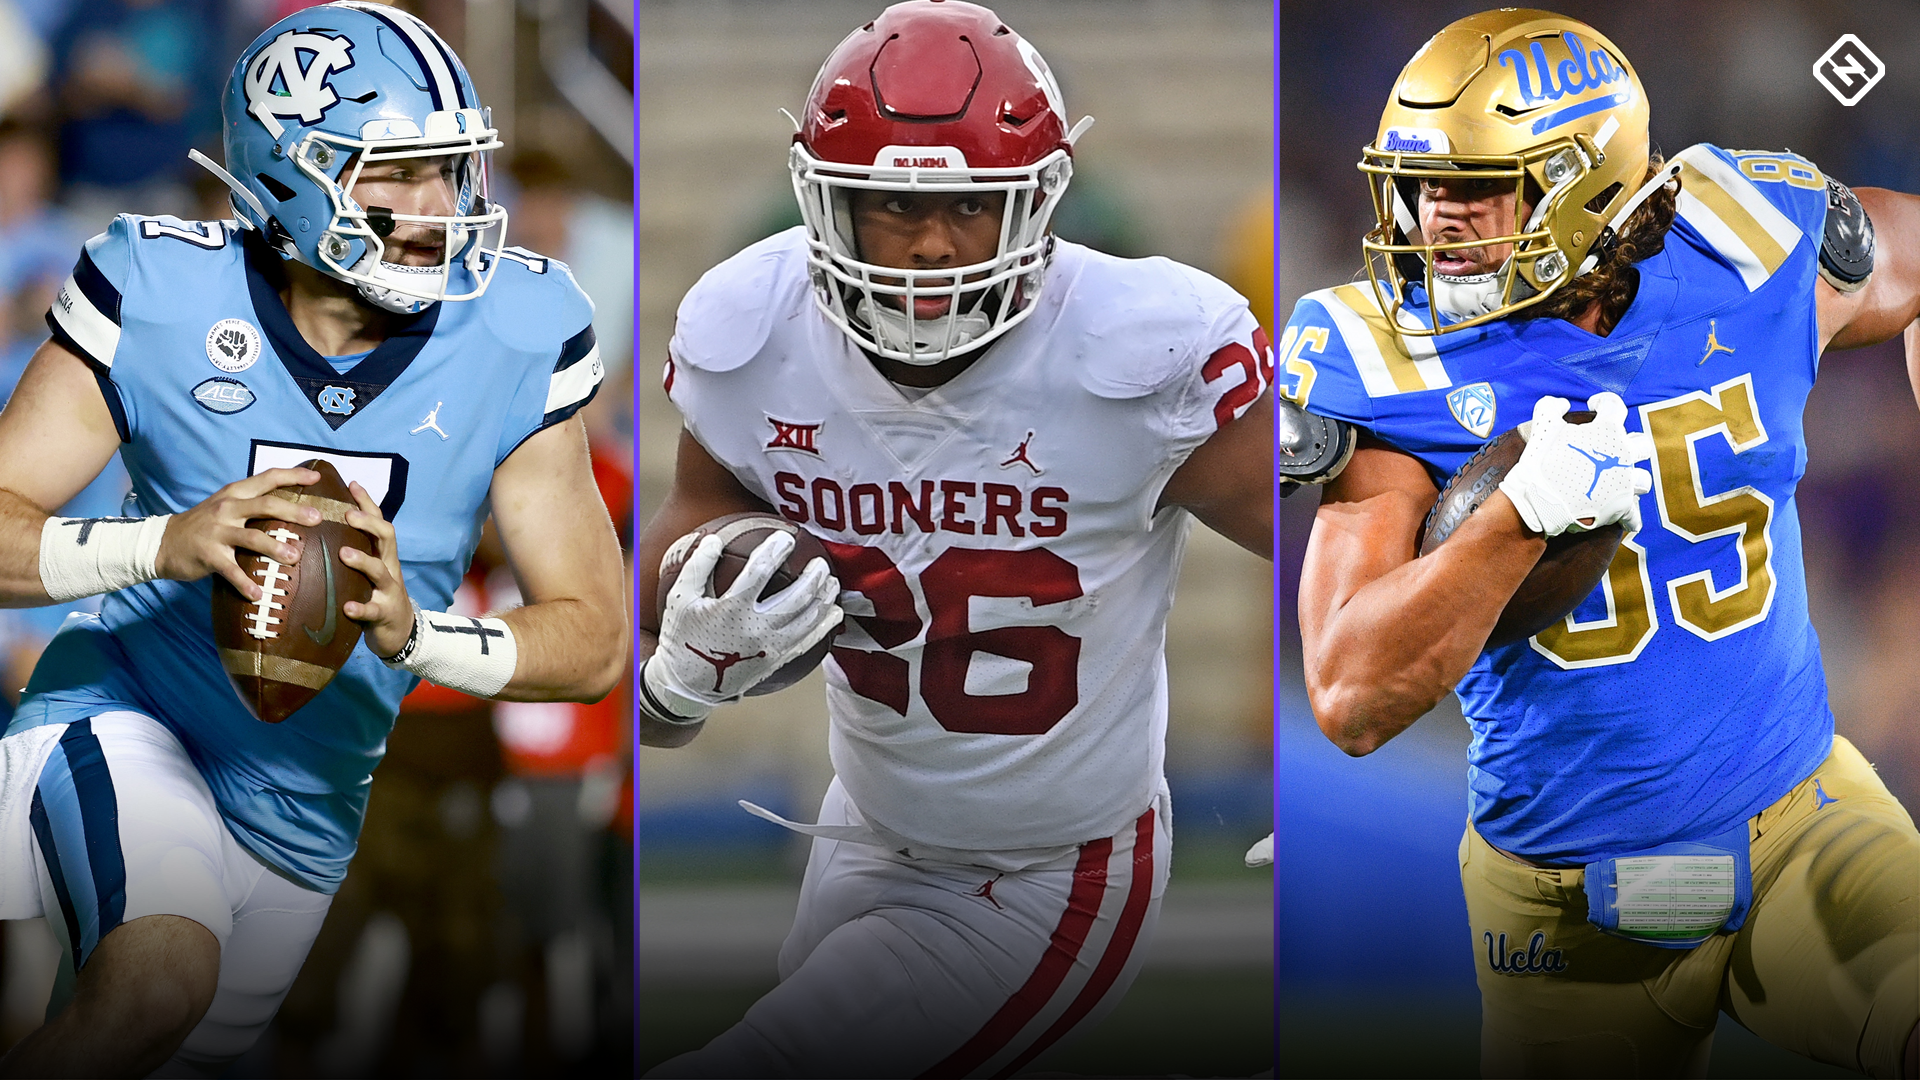 College Fantasy Football: Expert DFS picks, sleepers for Week 7 DraftKings contests